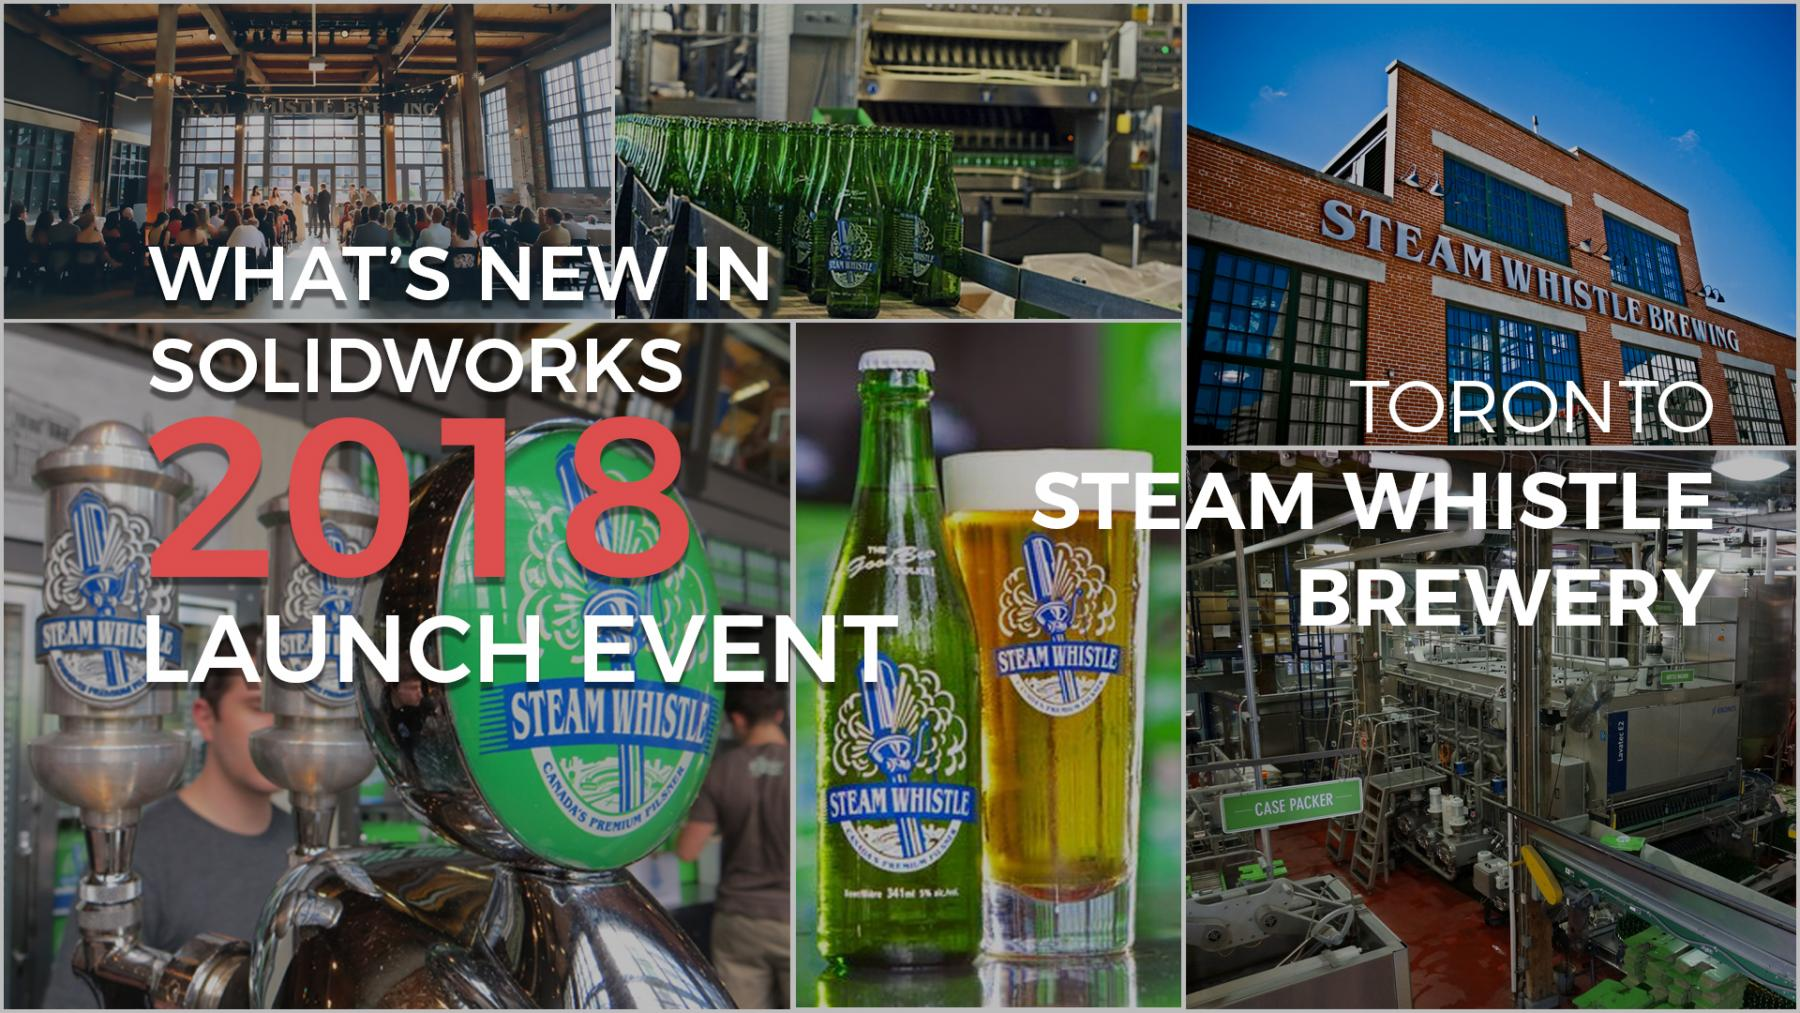 What's New in SolidWorks 2018 Launch Event in Toronto! |